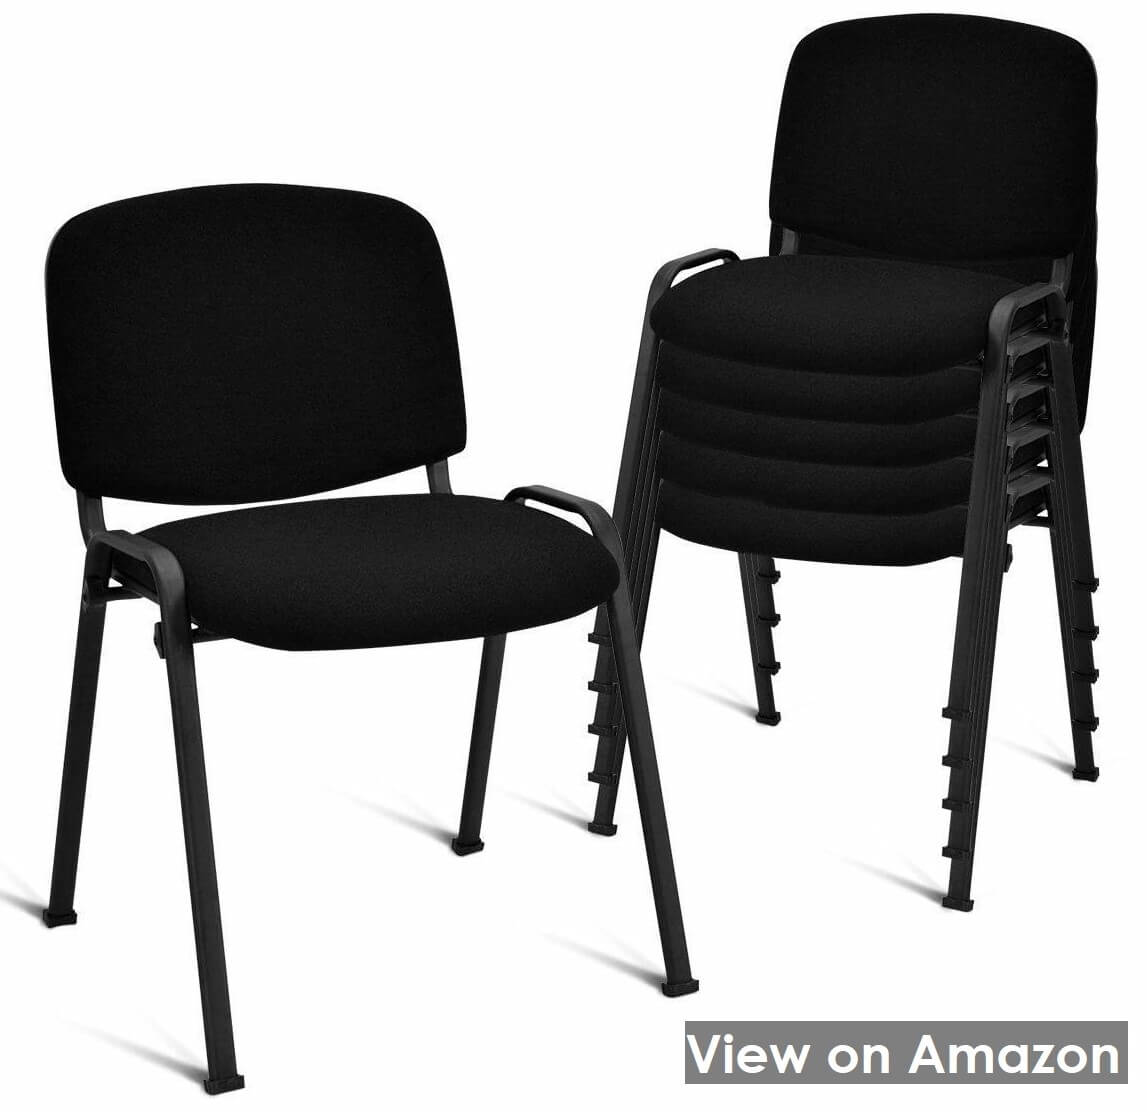 Giantex Set of 5 Conference Chair